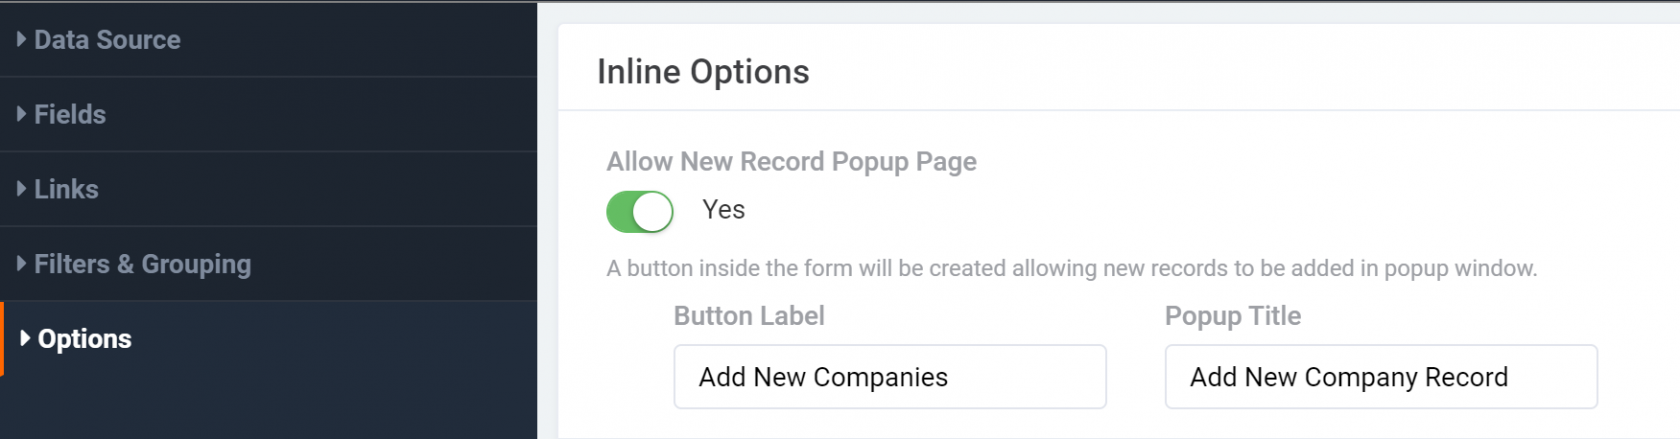 add-button-name.png